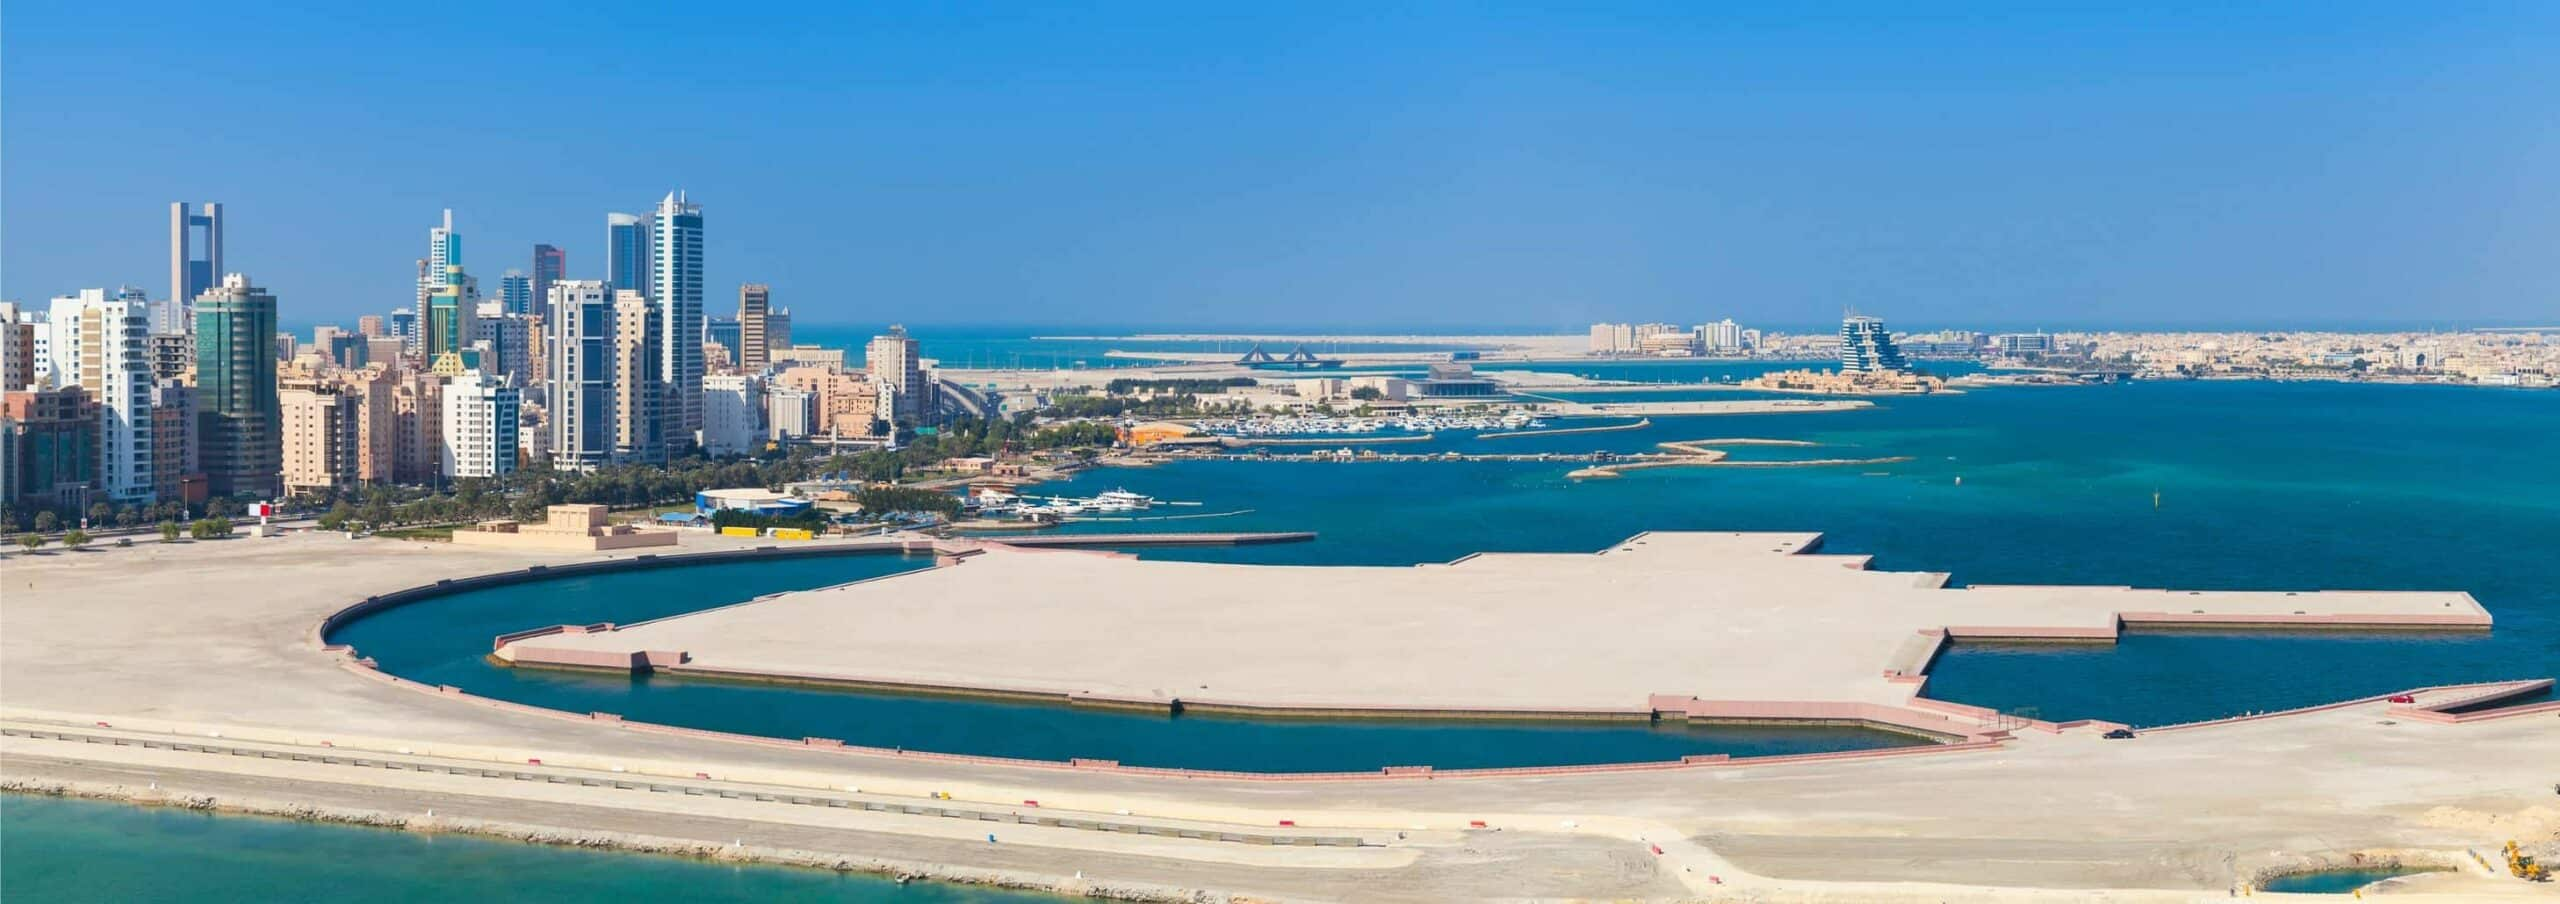 Bird view panorama of Manama city, Bahrain